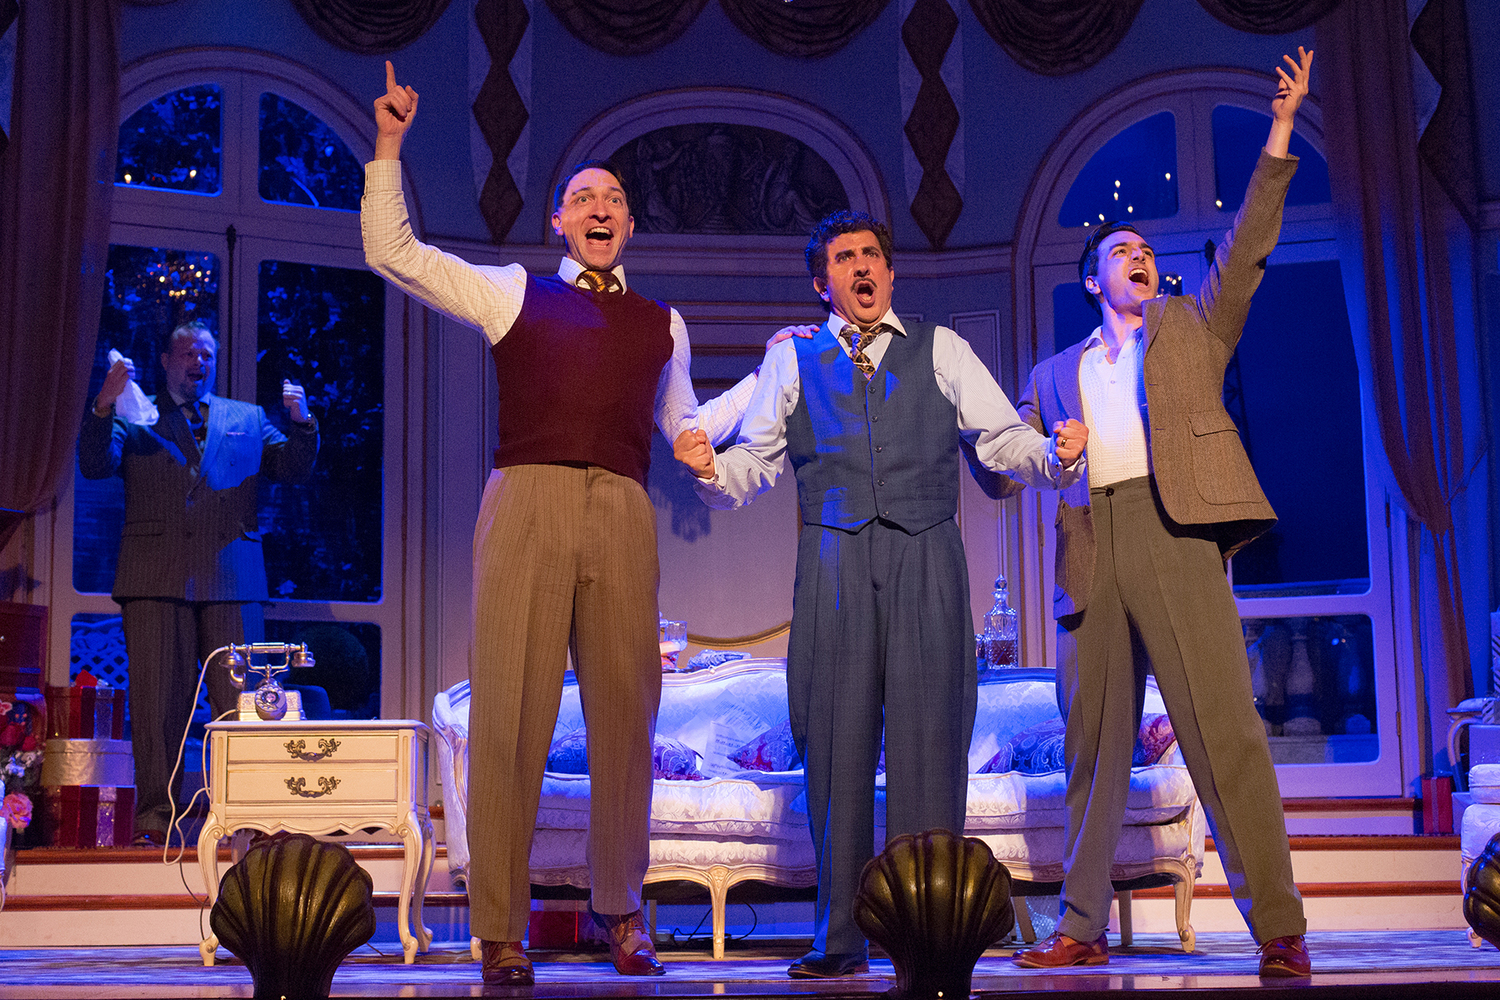 BWW Review: A COMEDY OF TENORS  at Walnut Street Theatre